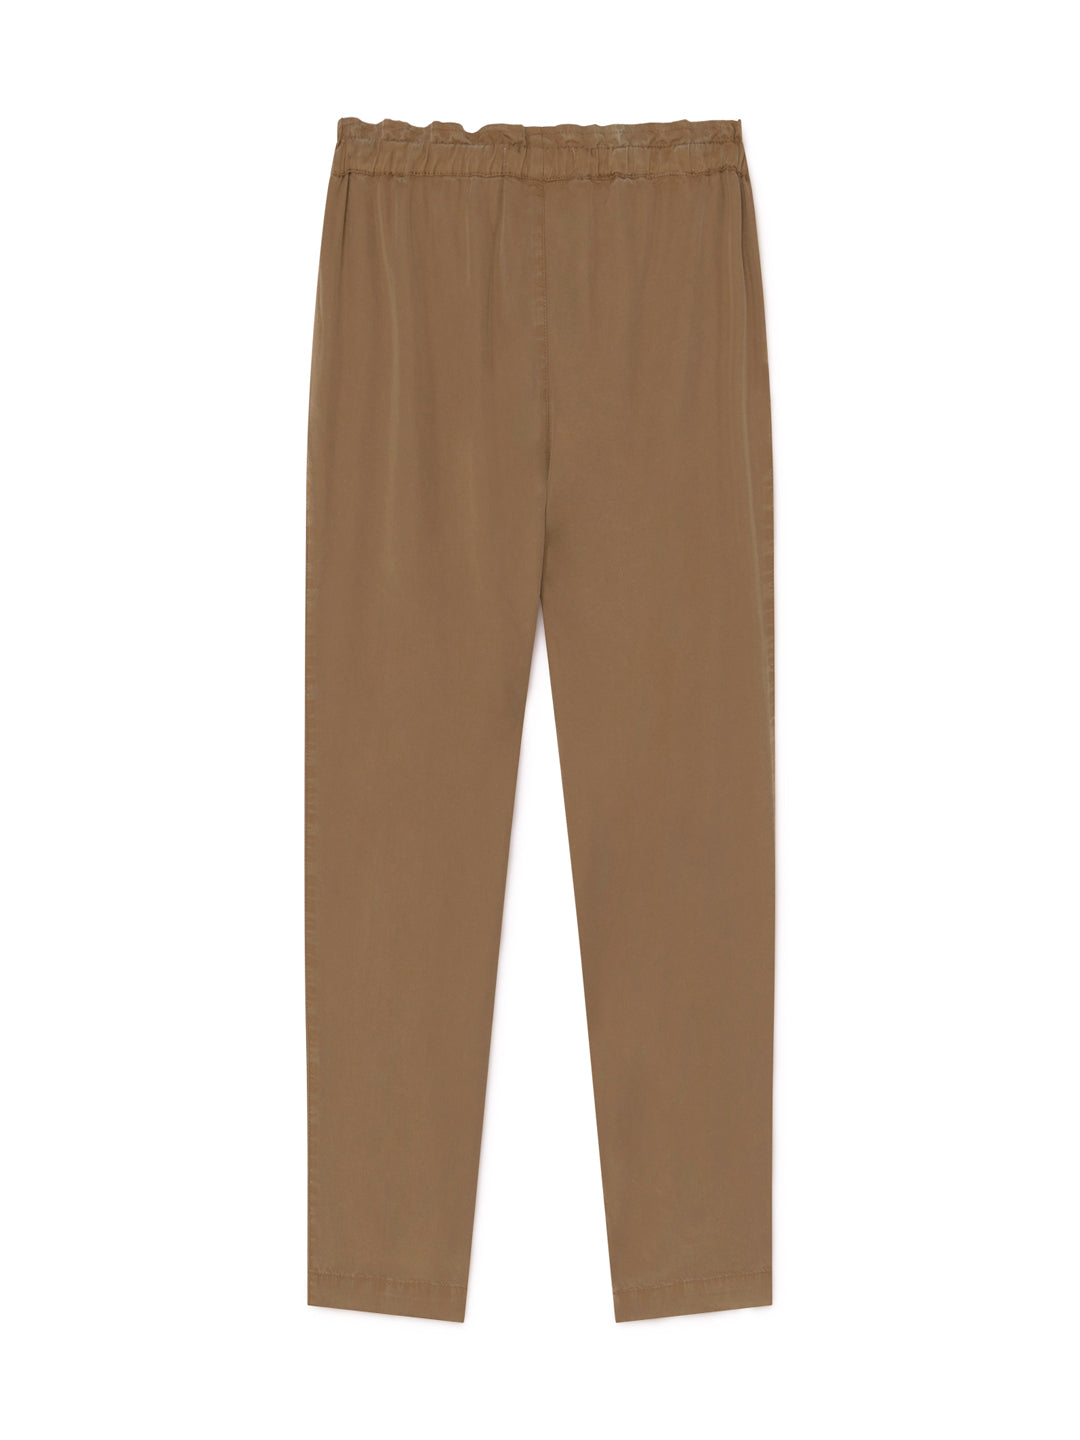 TWOTHIRDS Womens Pants: Barra - Pecan back